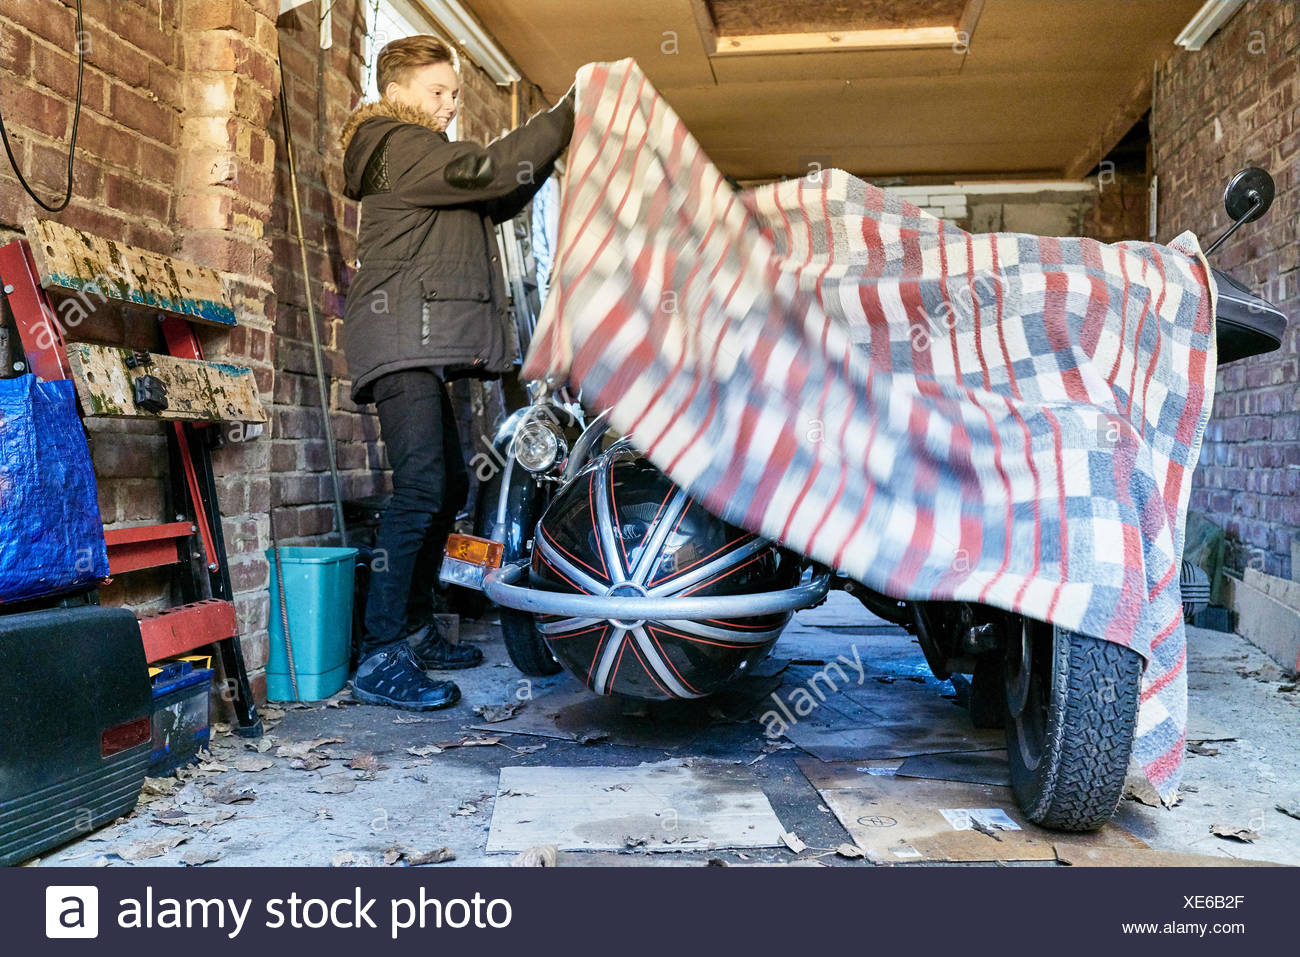 Boy Removing Blanket From Motorcycle And Sidecar In Garage Stock Disassembly Photos Images Alamy Cultura Creative Rf Photo